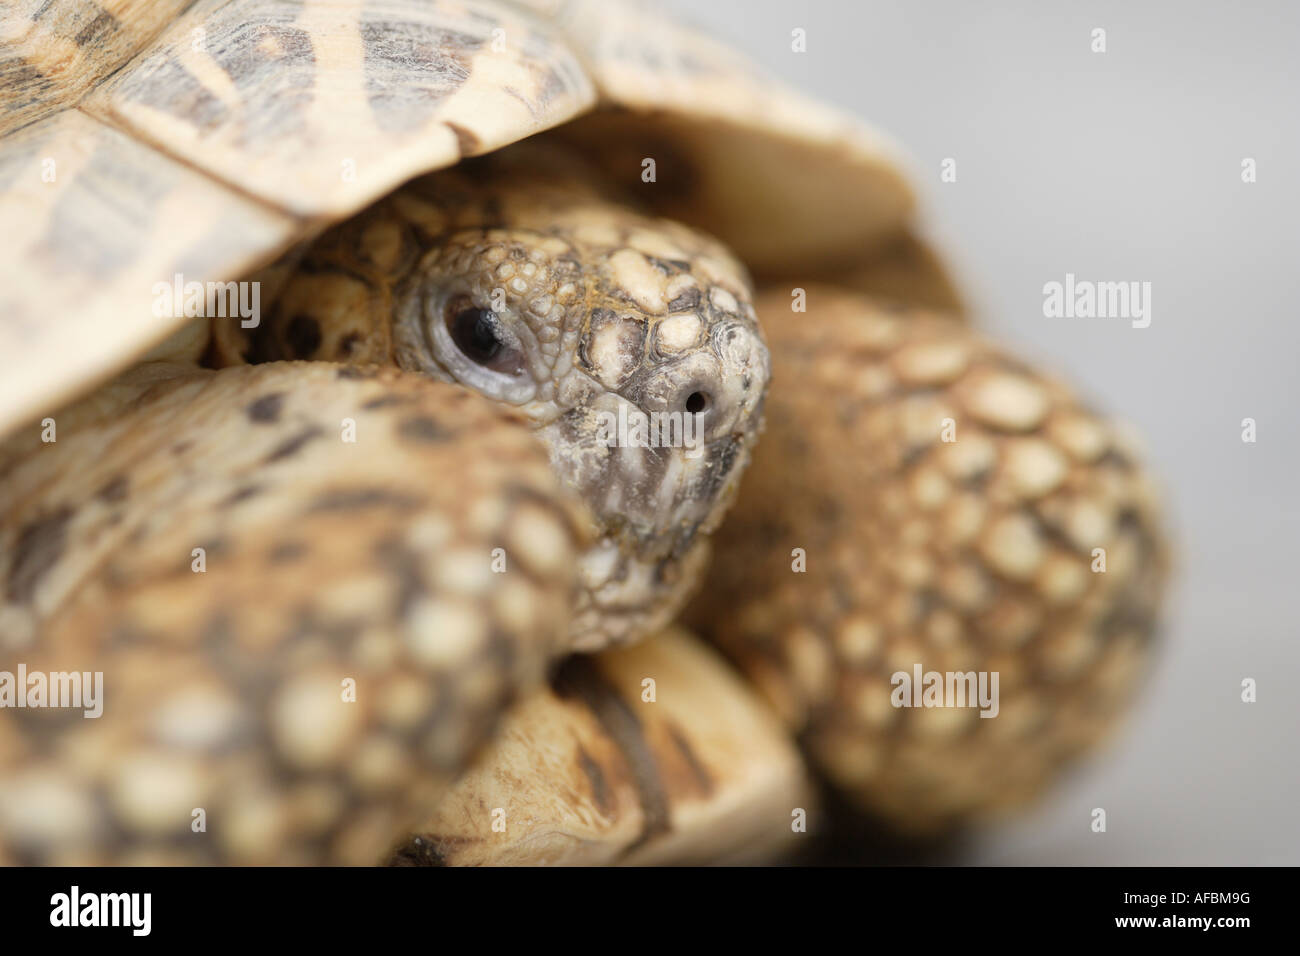 Indian star tortoise - Stock Image